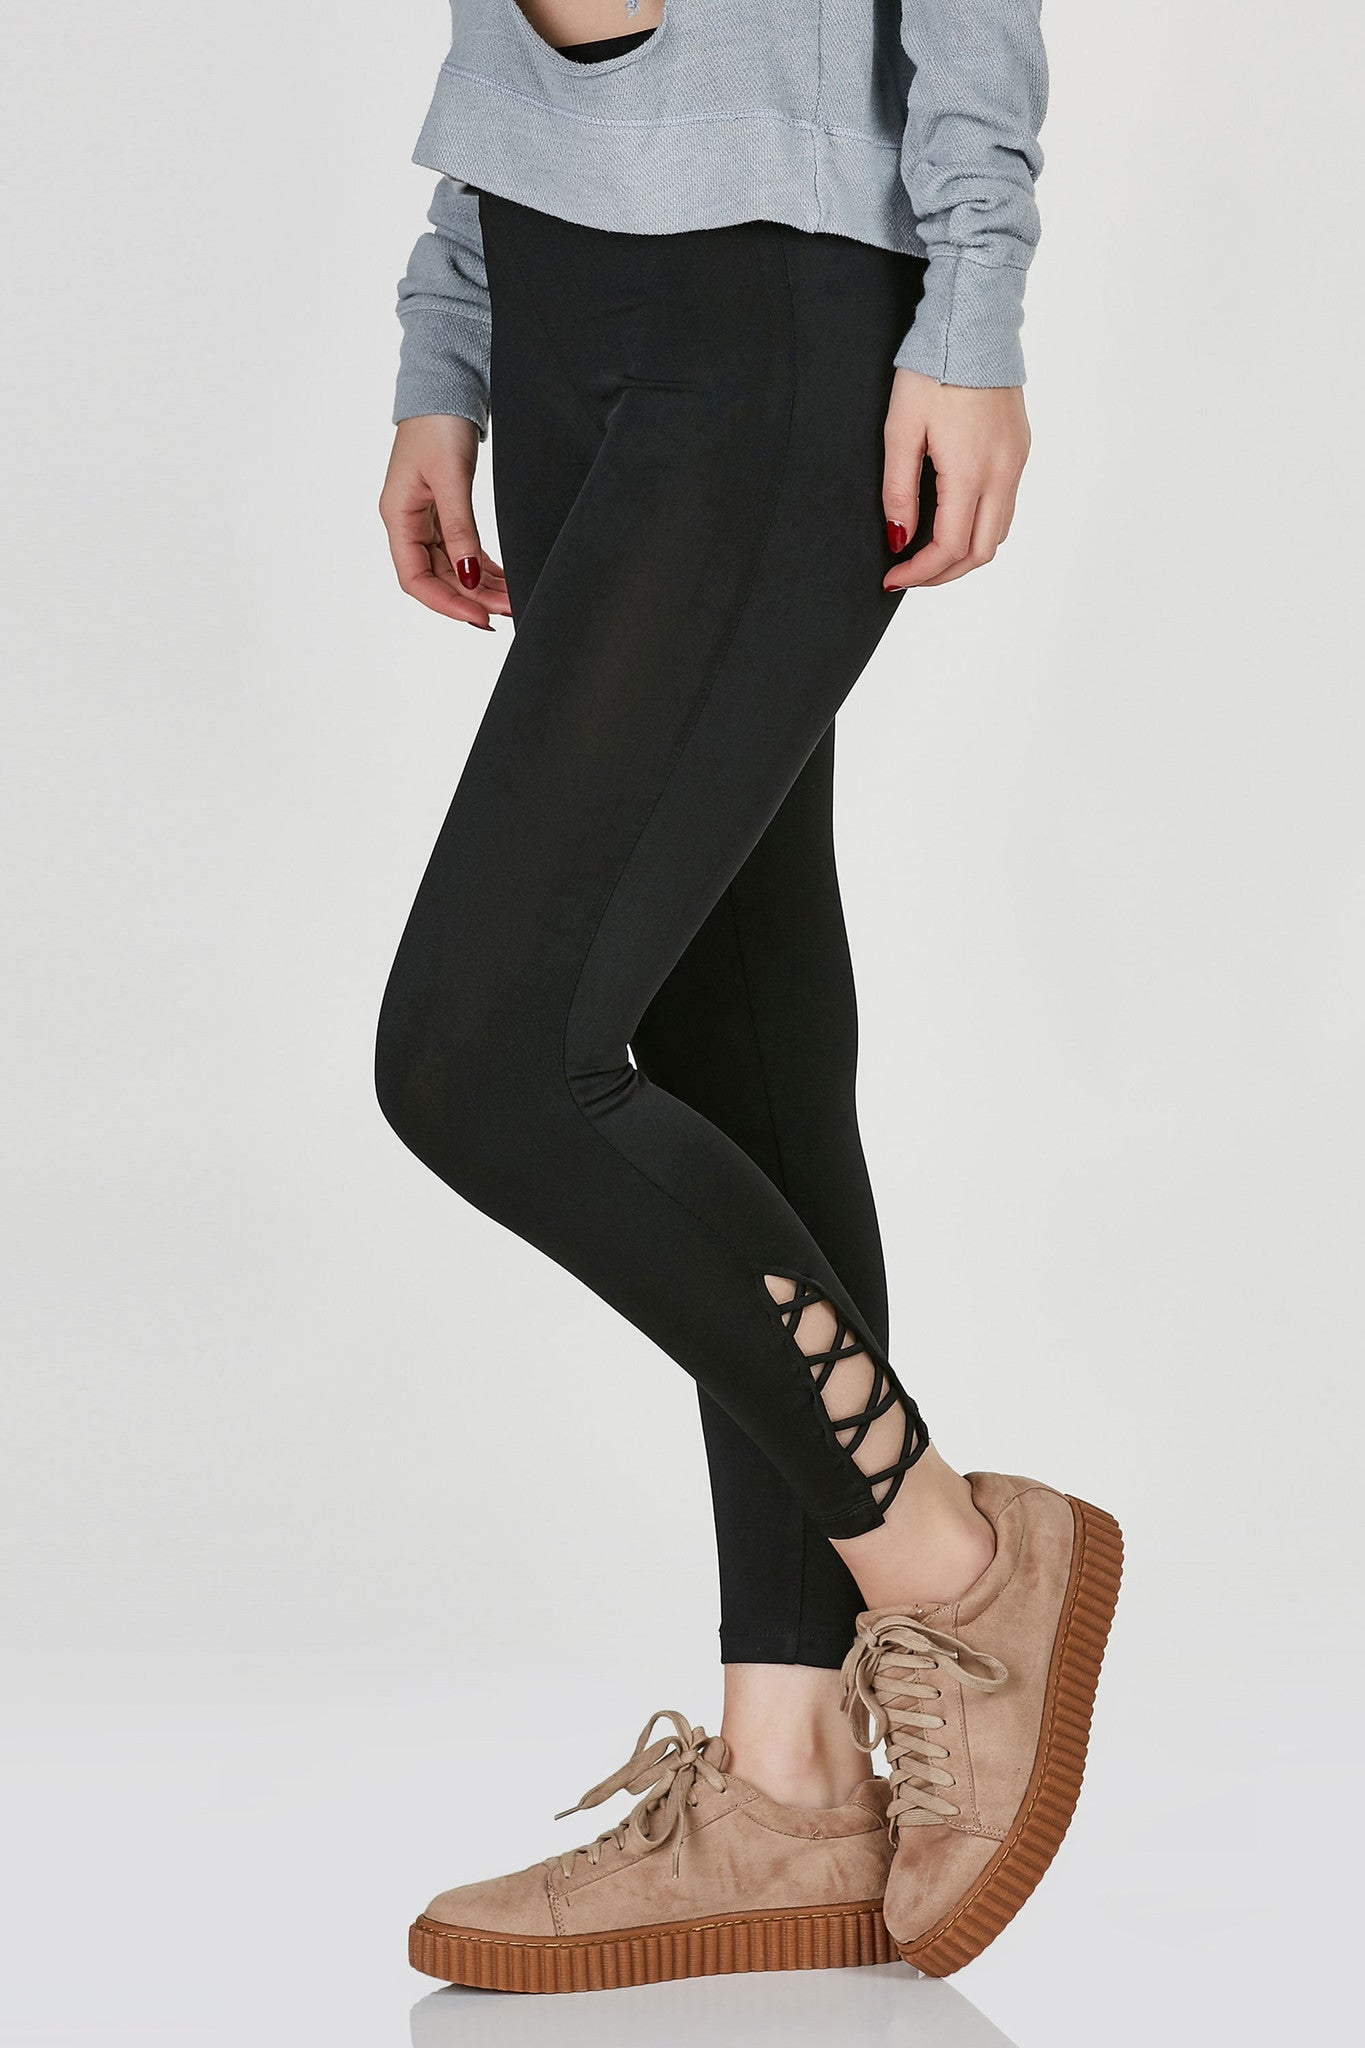 High rise cropped leggings with trendy lace up design at hem. Stretchy material with flattering slim fit.